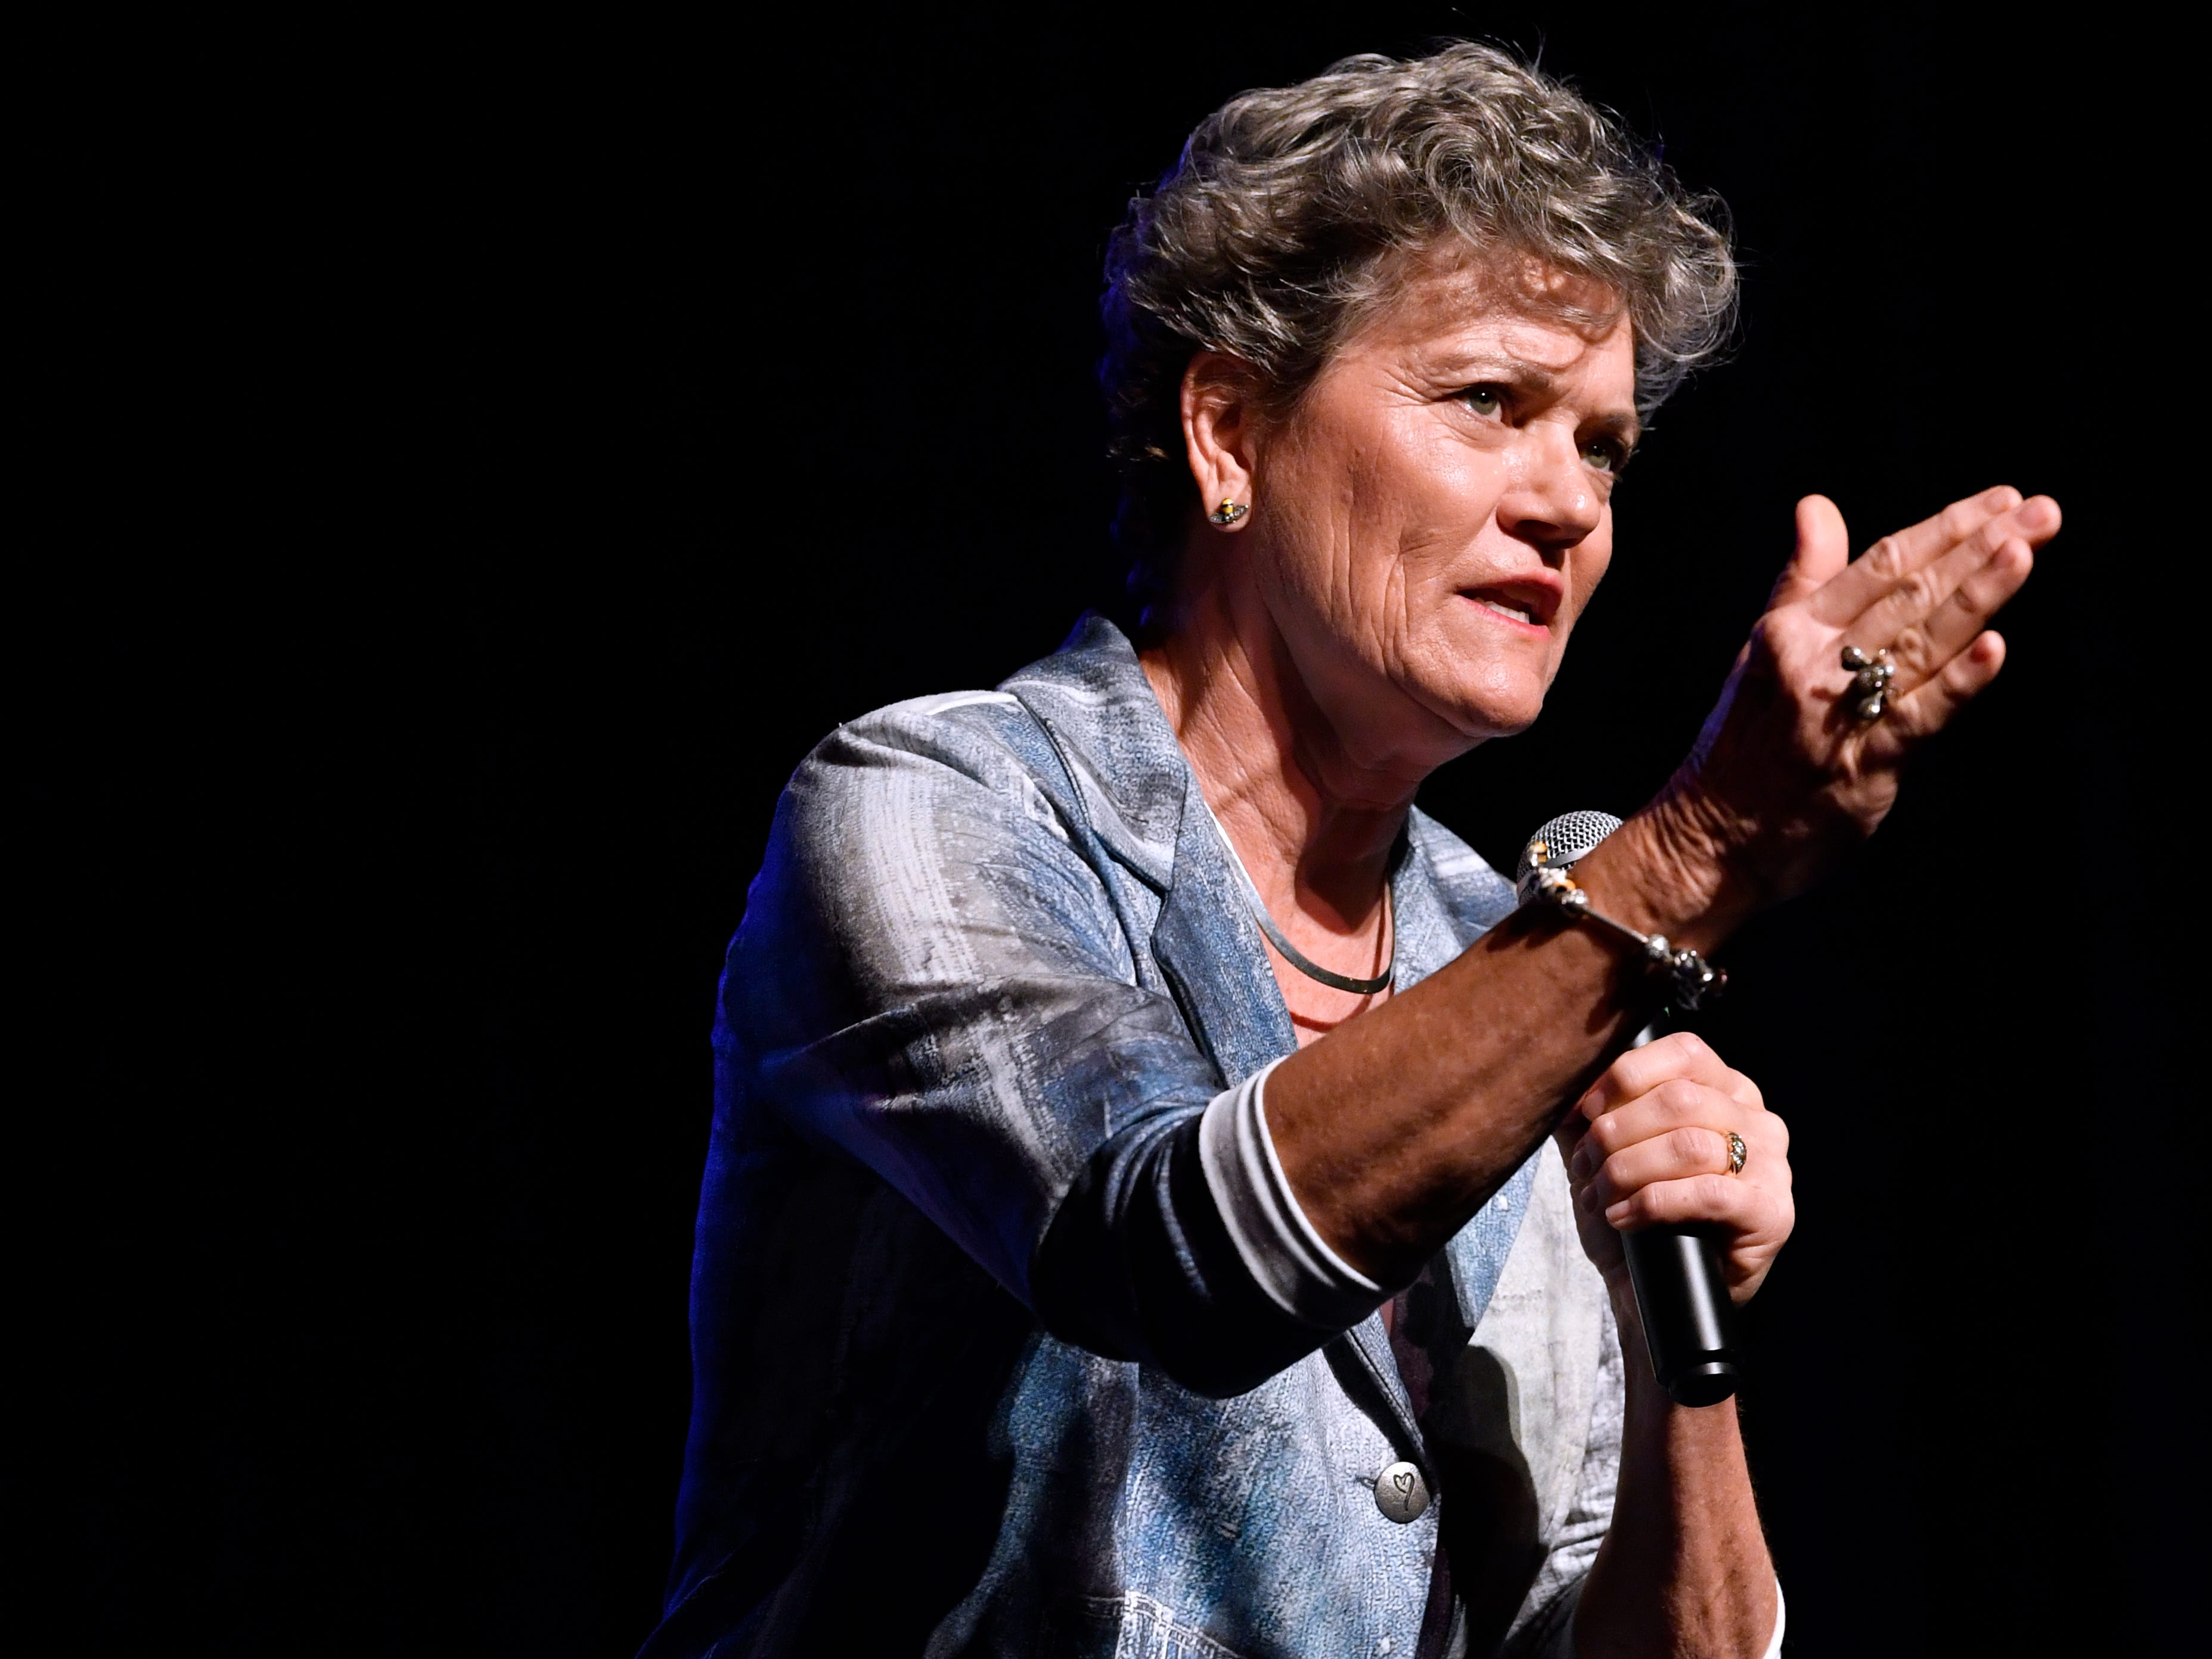 Kim Olson, the Democratic candidate for Texas Agriculture Commissioner, speaks during a town hall meeting Thursday August 2, 2018 at the Paramount Theatre. Five Democrats, including U.S. Senate candidate Beto O'Rourke, spoke to a crowd of nearly 800 people.